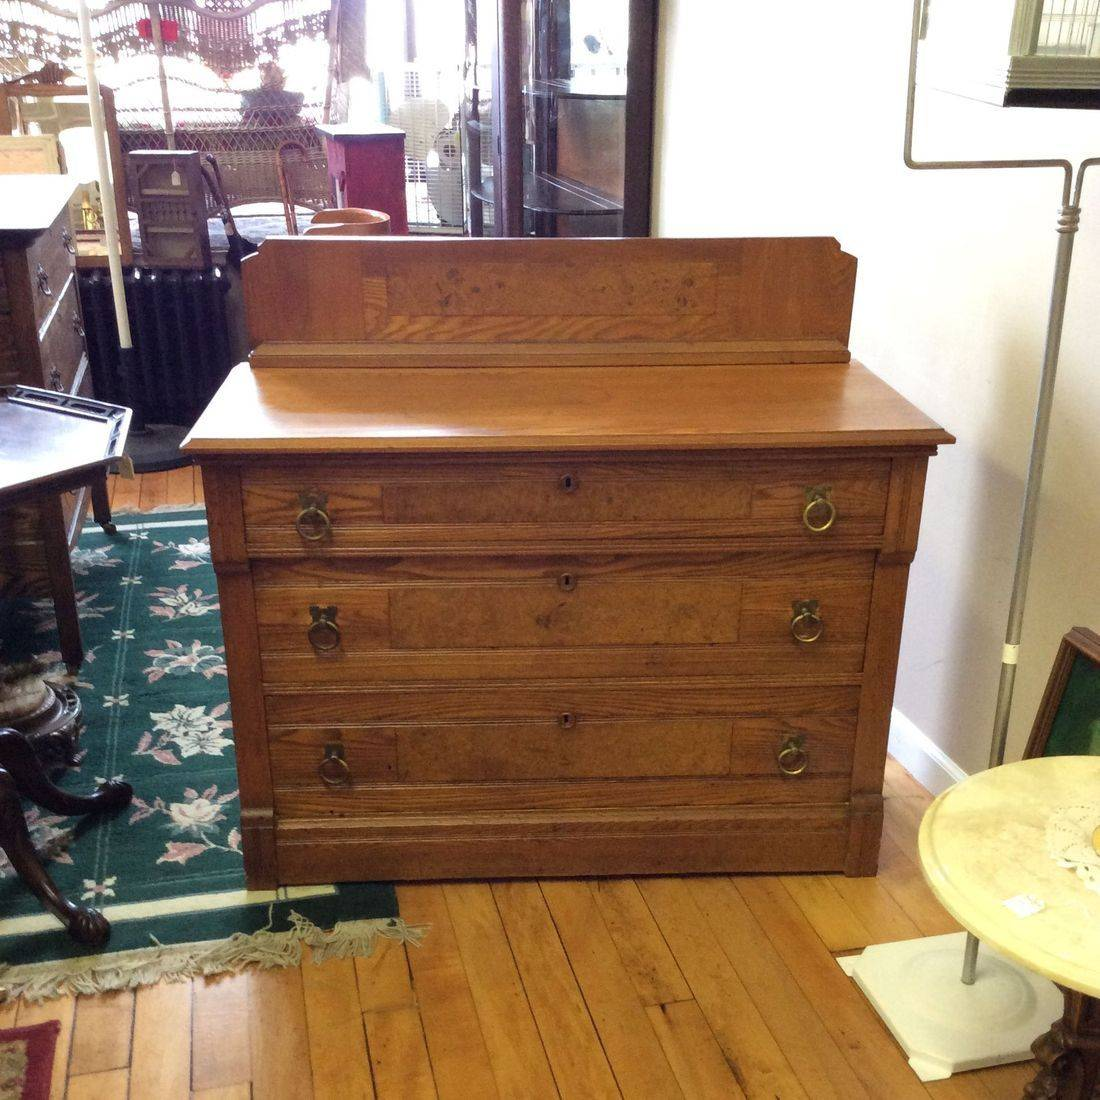 "1880's - 1890's Chestnut 3-Drawer Dresser w/Birdseye Maple Inlay Panels  40-1/2""W x 18-1/2"" D x 28-3/4"" H ( 36-1/4"" H w/Backsplash )   $225.00"